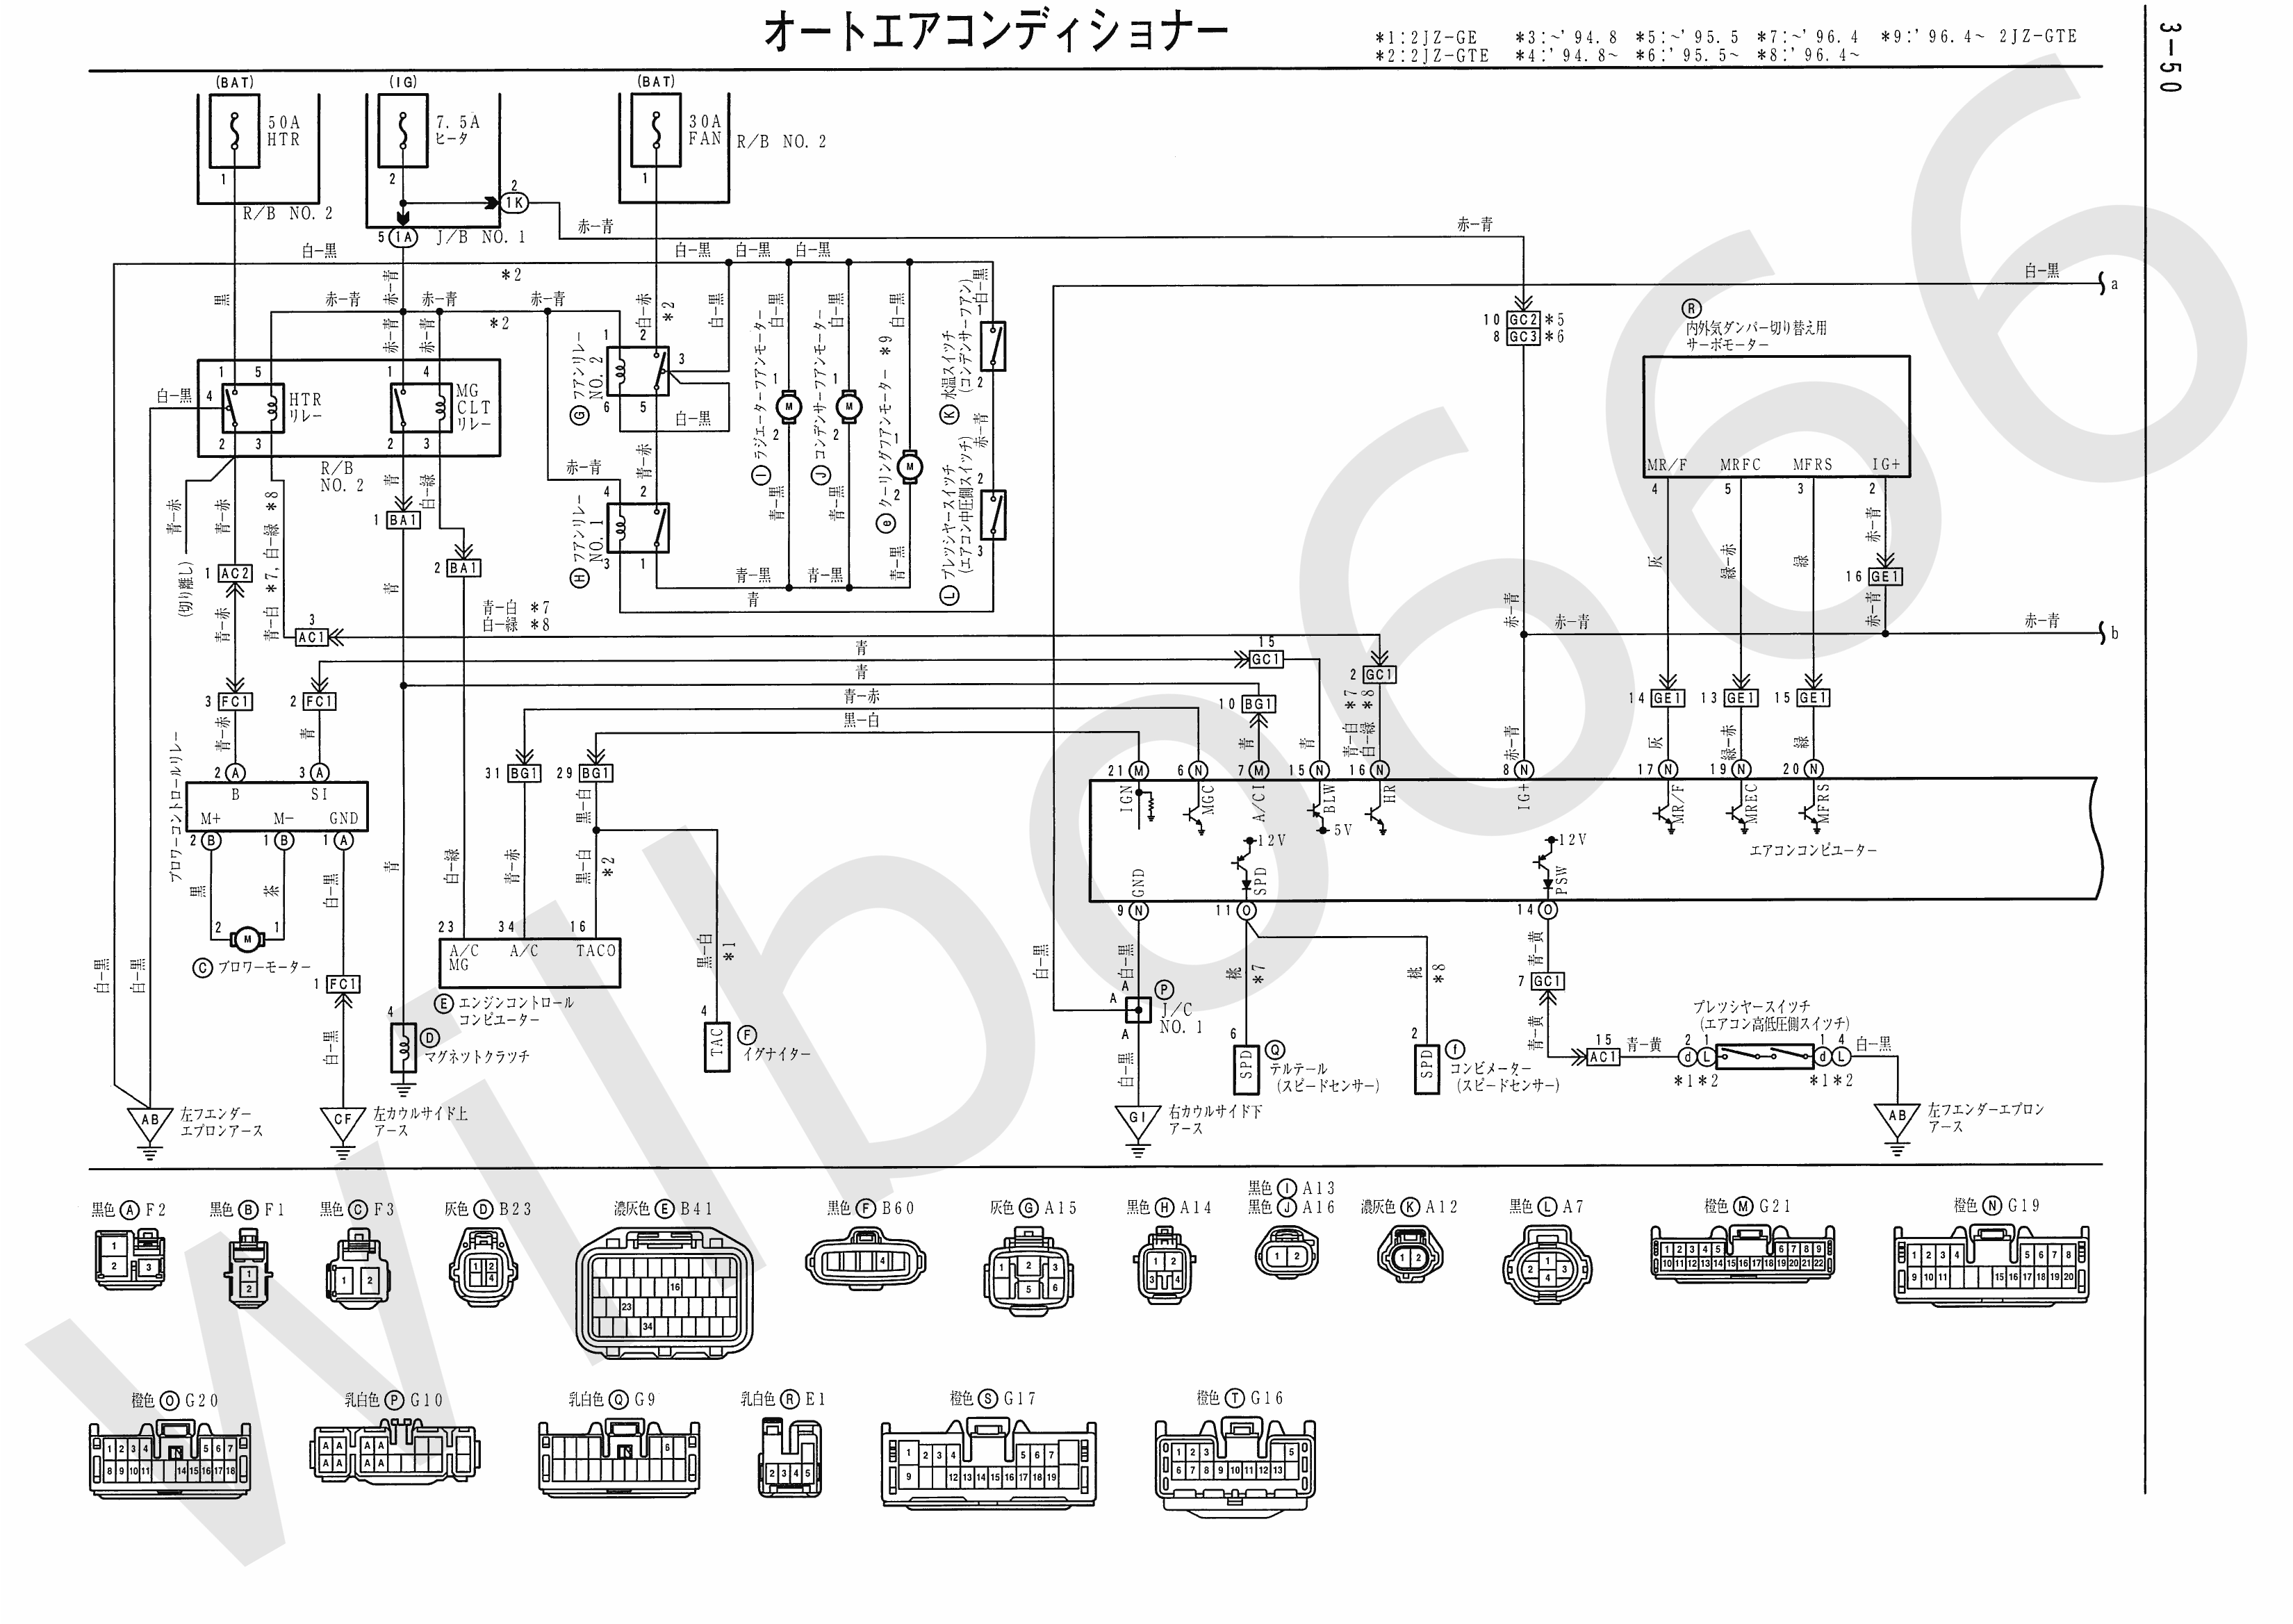 JZA80 Electrical Wiring Diagram 6742505 3 50 wilbo666 2jz ge jza80 supra engine wiring 2jz ge wiring diagram pdf at edmiracle.co